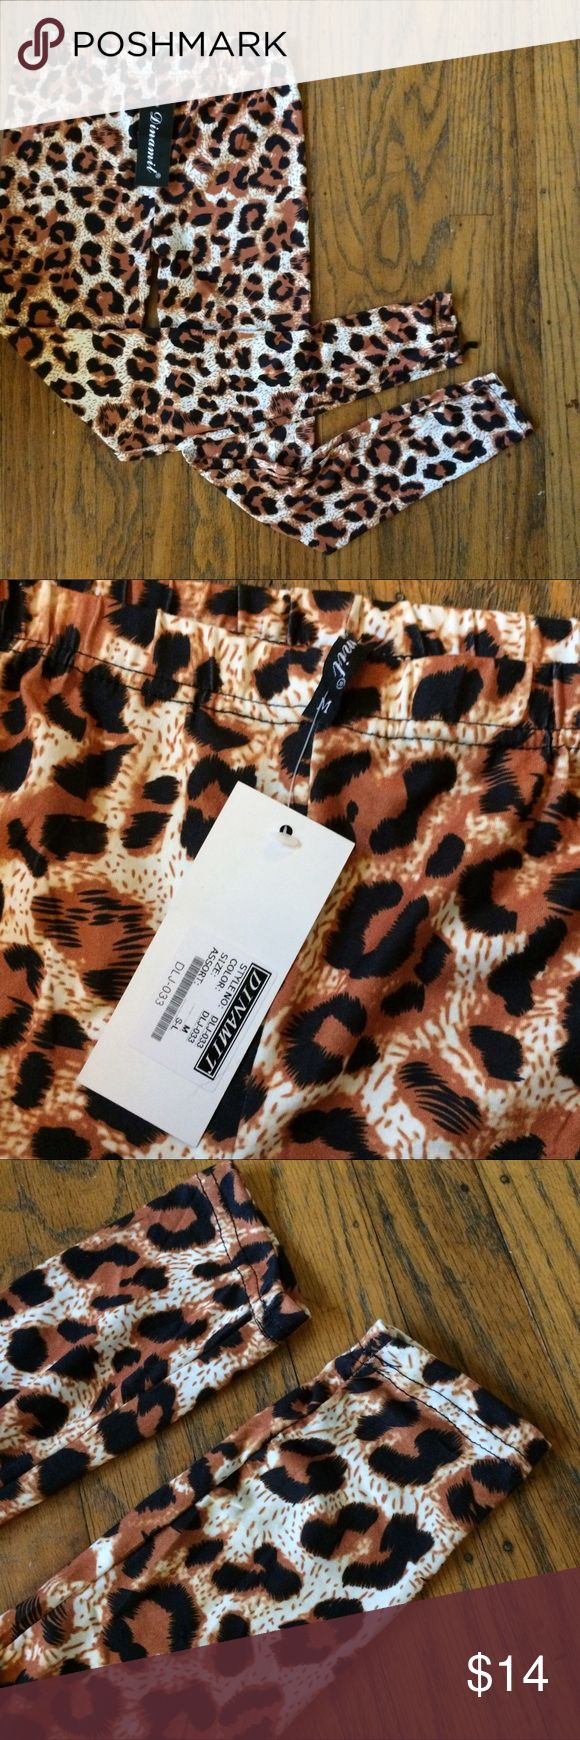 NWT Dinamit Cheetah Leggings Great leggings, soft and NWT. Not Charlotte Russe, listed for exposure. Make an offer! Charlotte Russe Pants Leggings